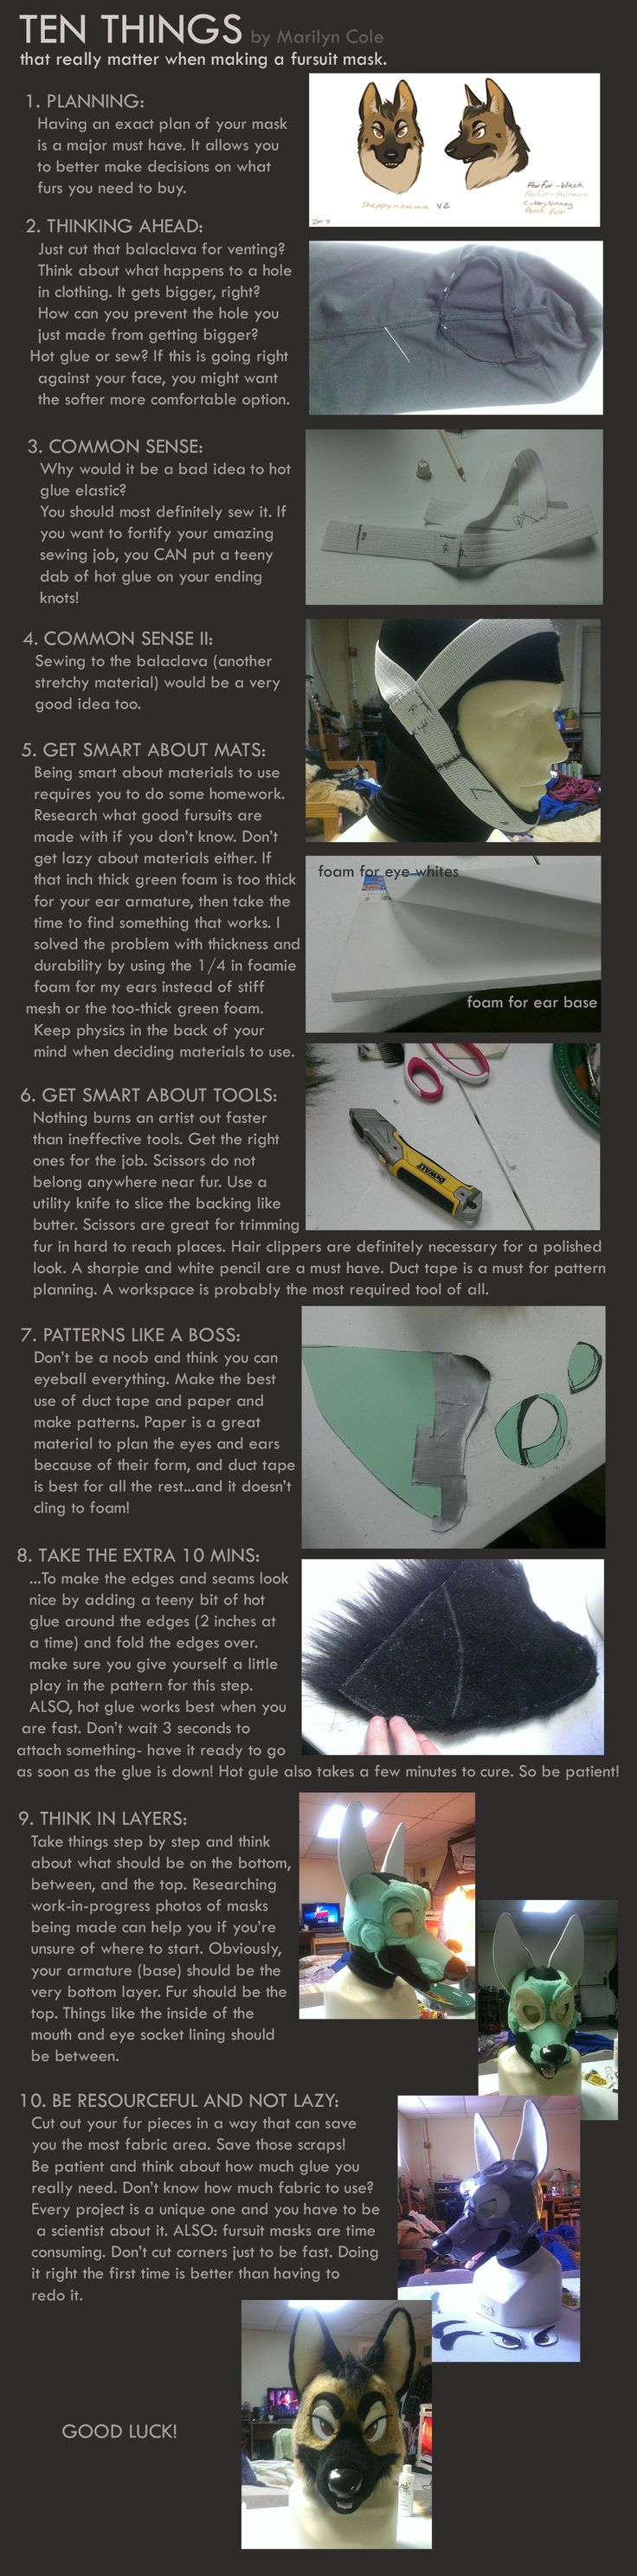 TEN THINGS - Tips on Making a fursuit mask by Katmomma on deviantART